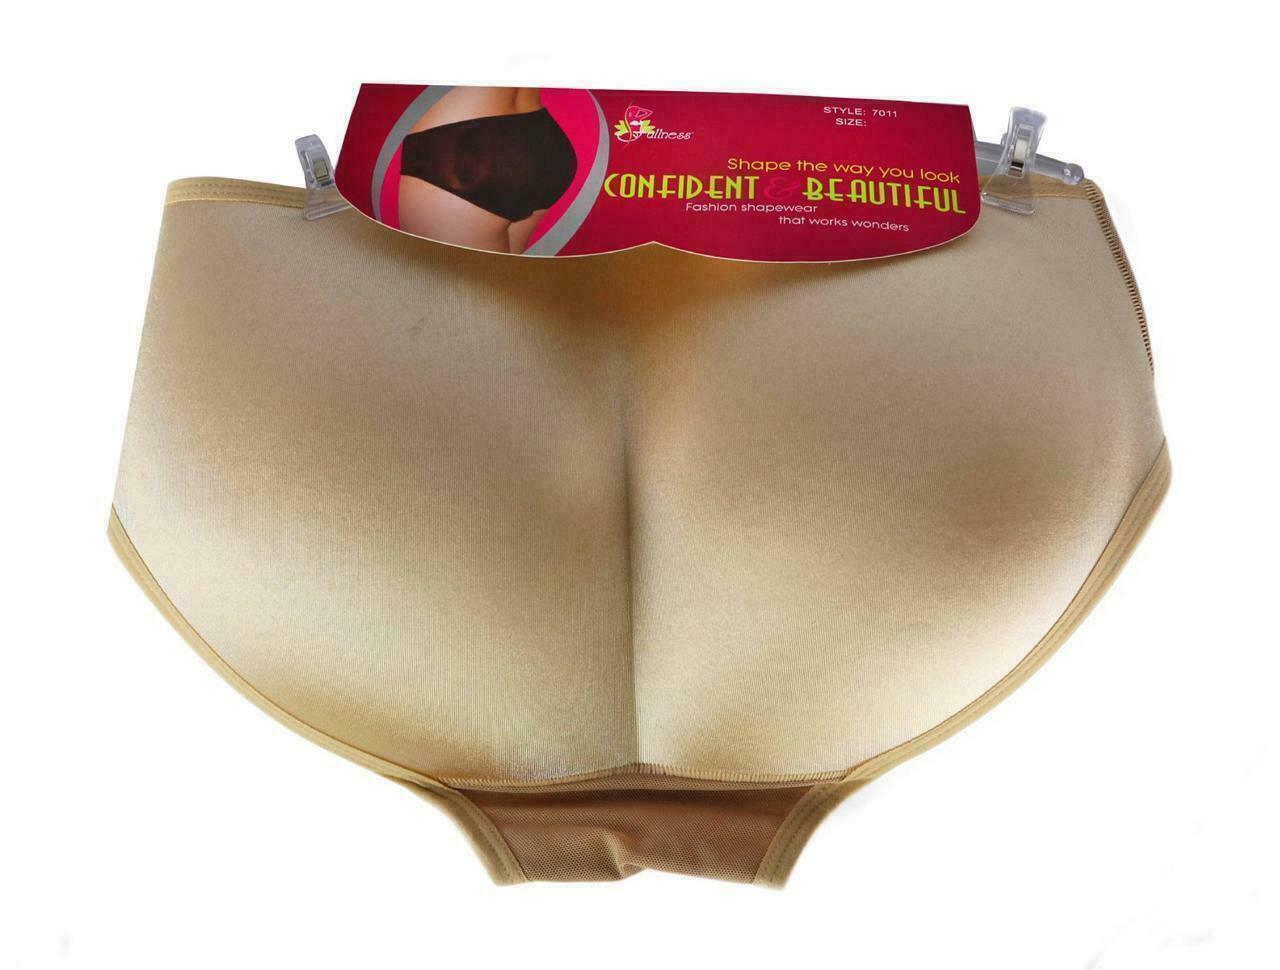 Women's Fullness Butt Lifter Enhancer Booster Shaper Panty Beige #7011